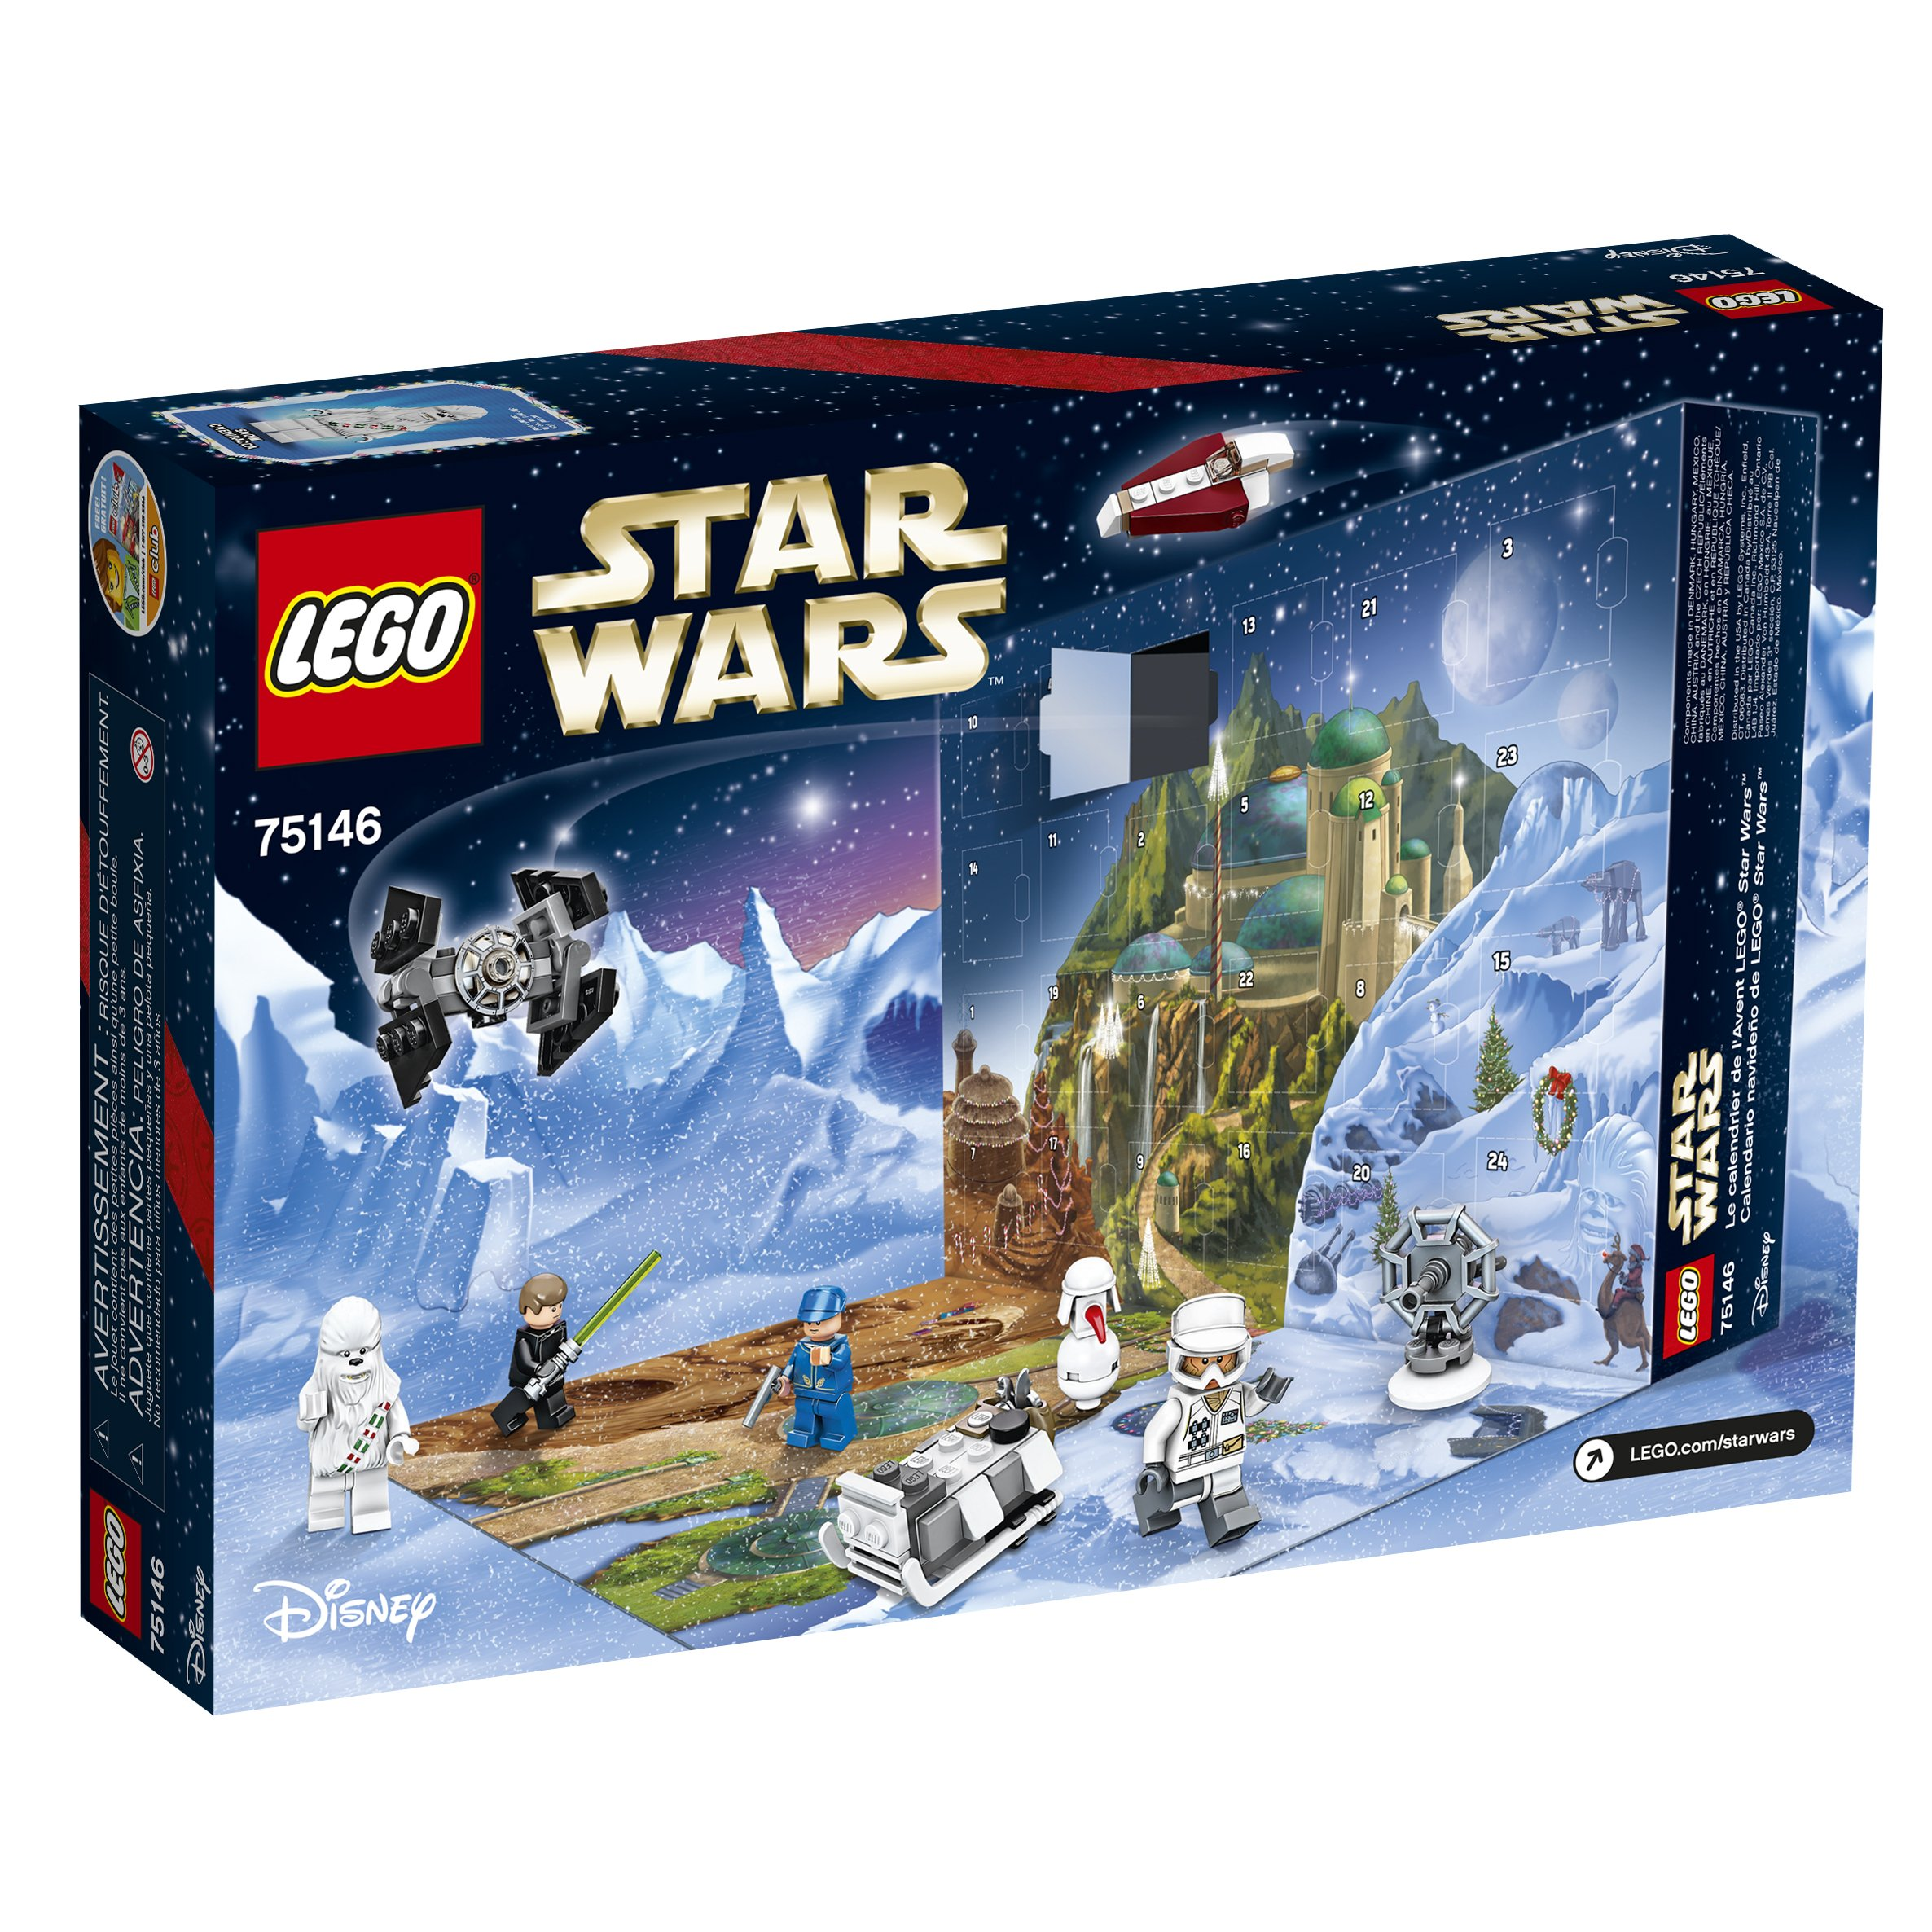 toys for boys you will not go wrong with christmas toys that will stimulate their love of building and games and those are the very toys that will